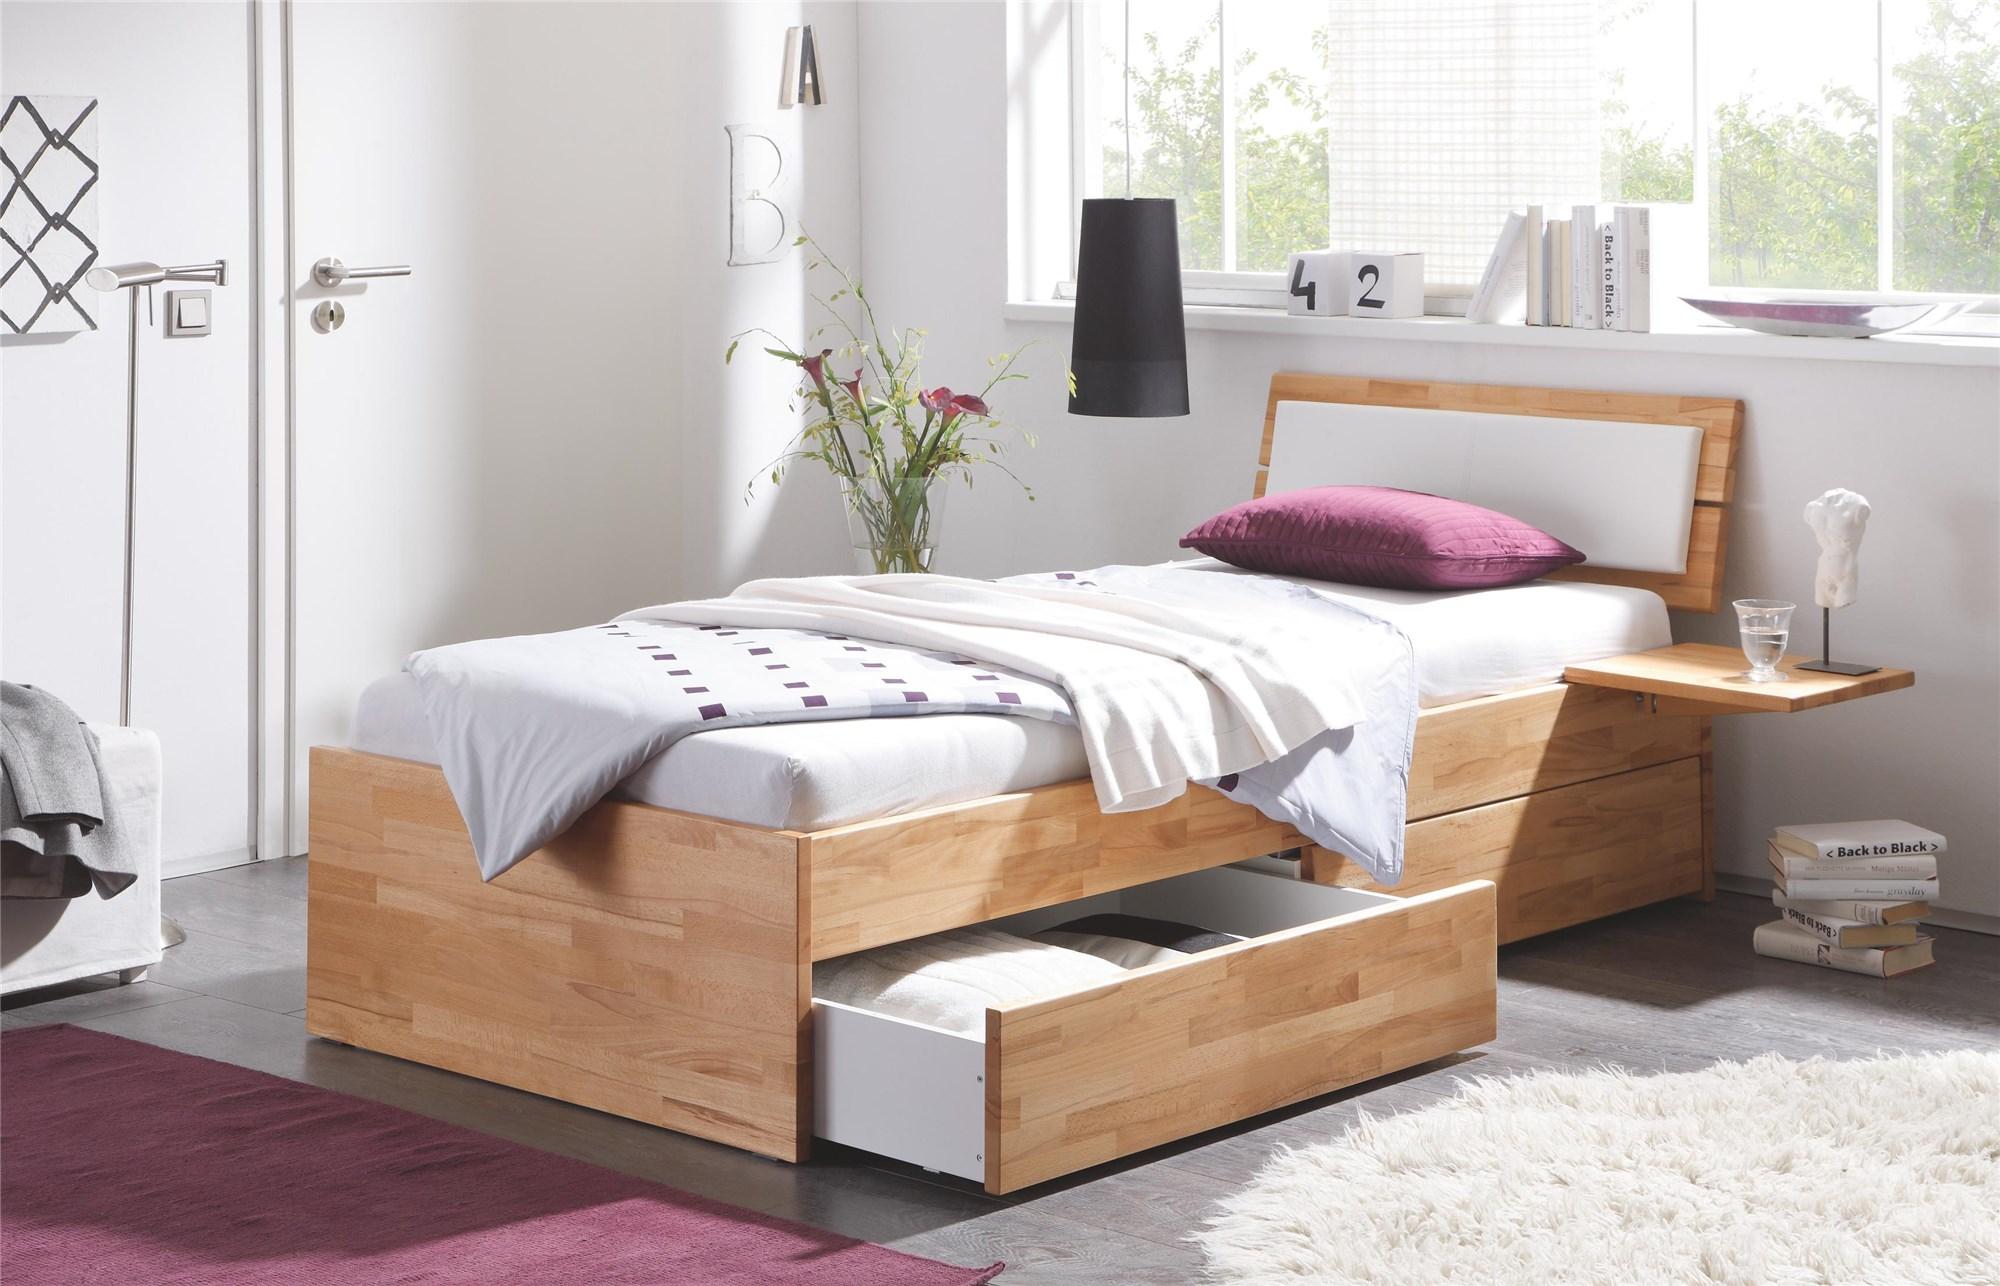 contemporary designer beds hasena spazio duetto solid. Black Bedroom Furniture Sets. Home Design Ideas